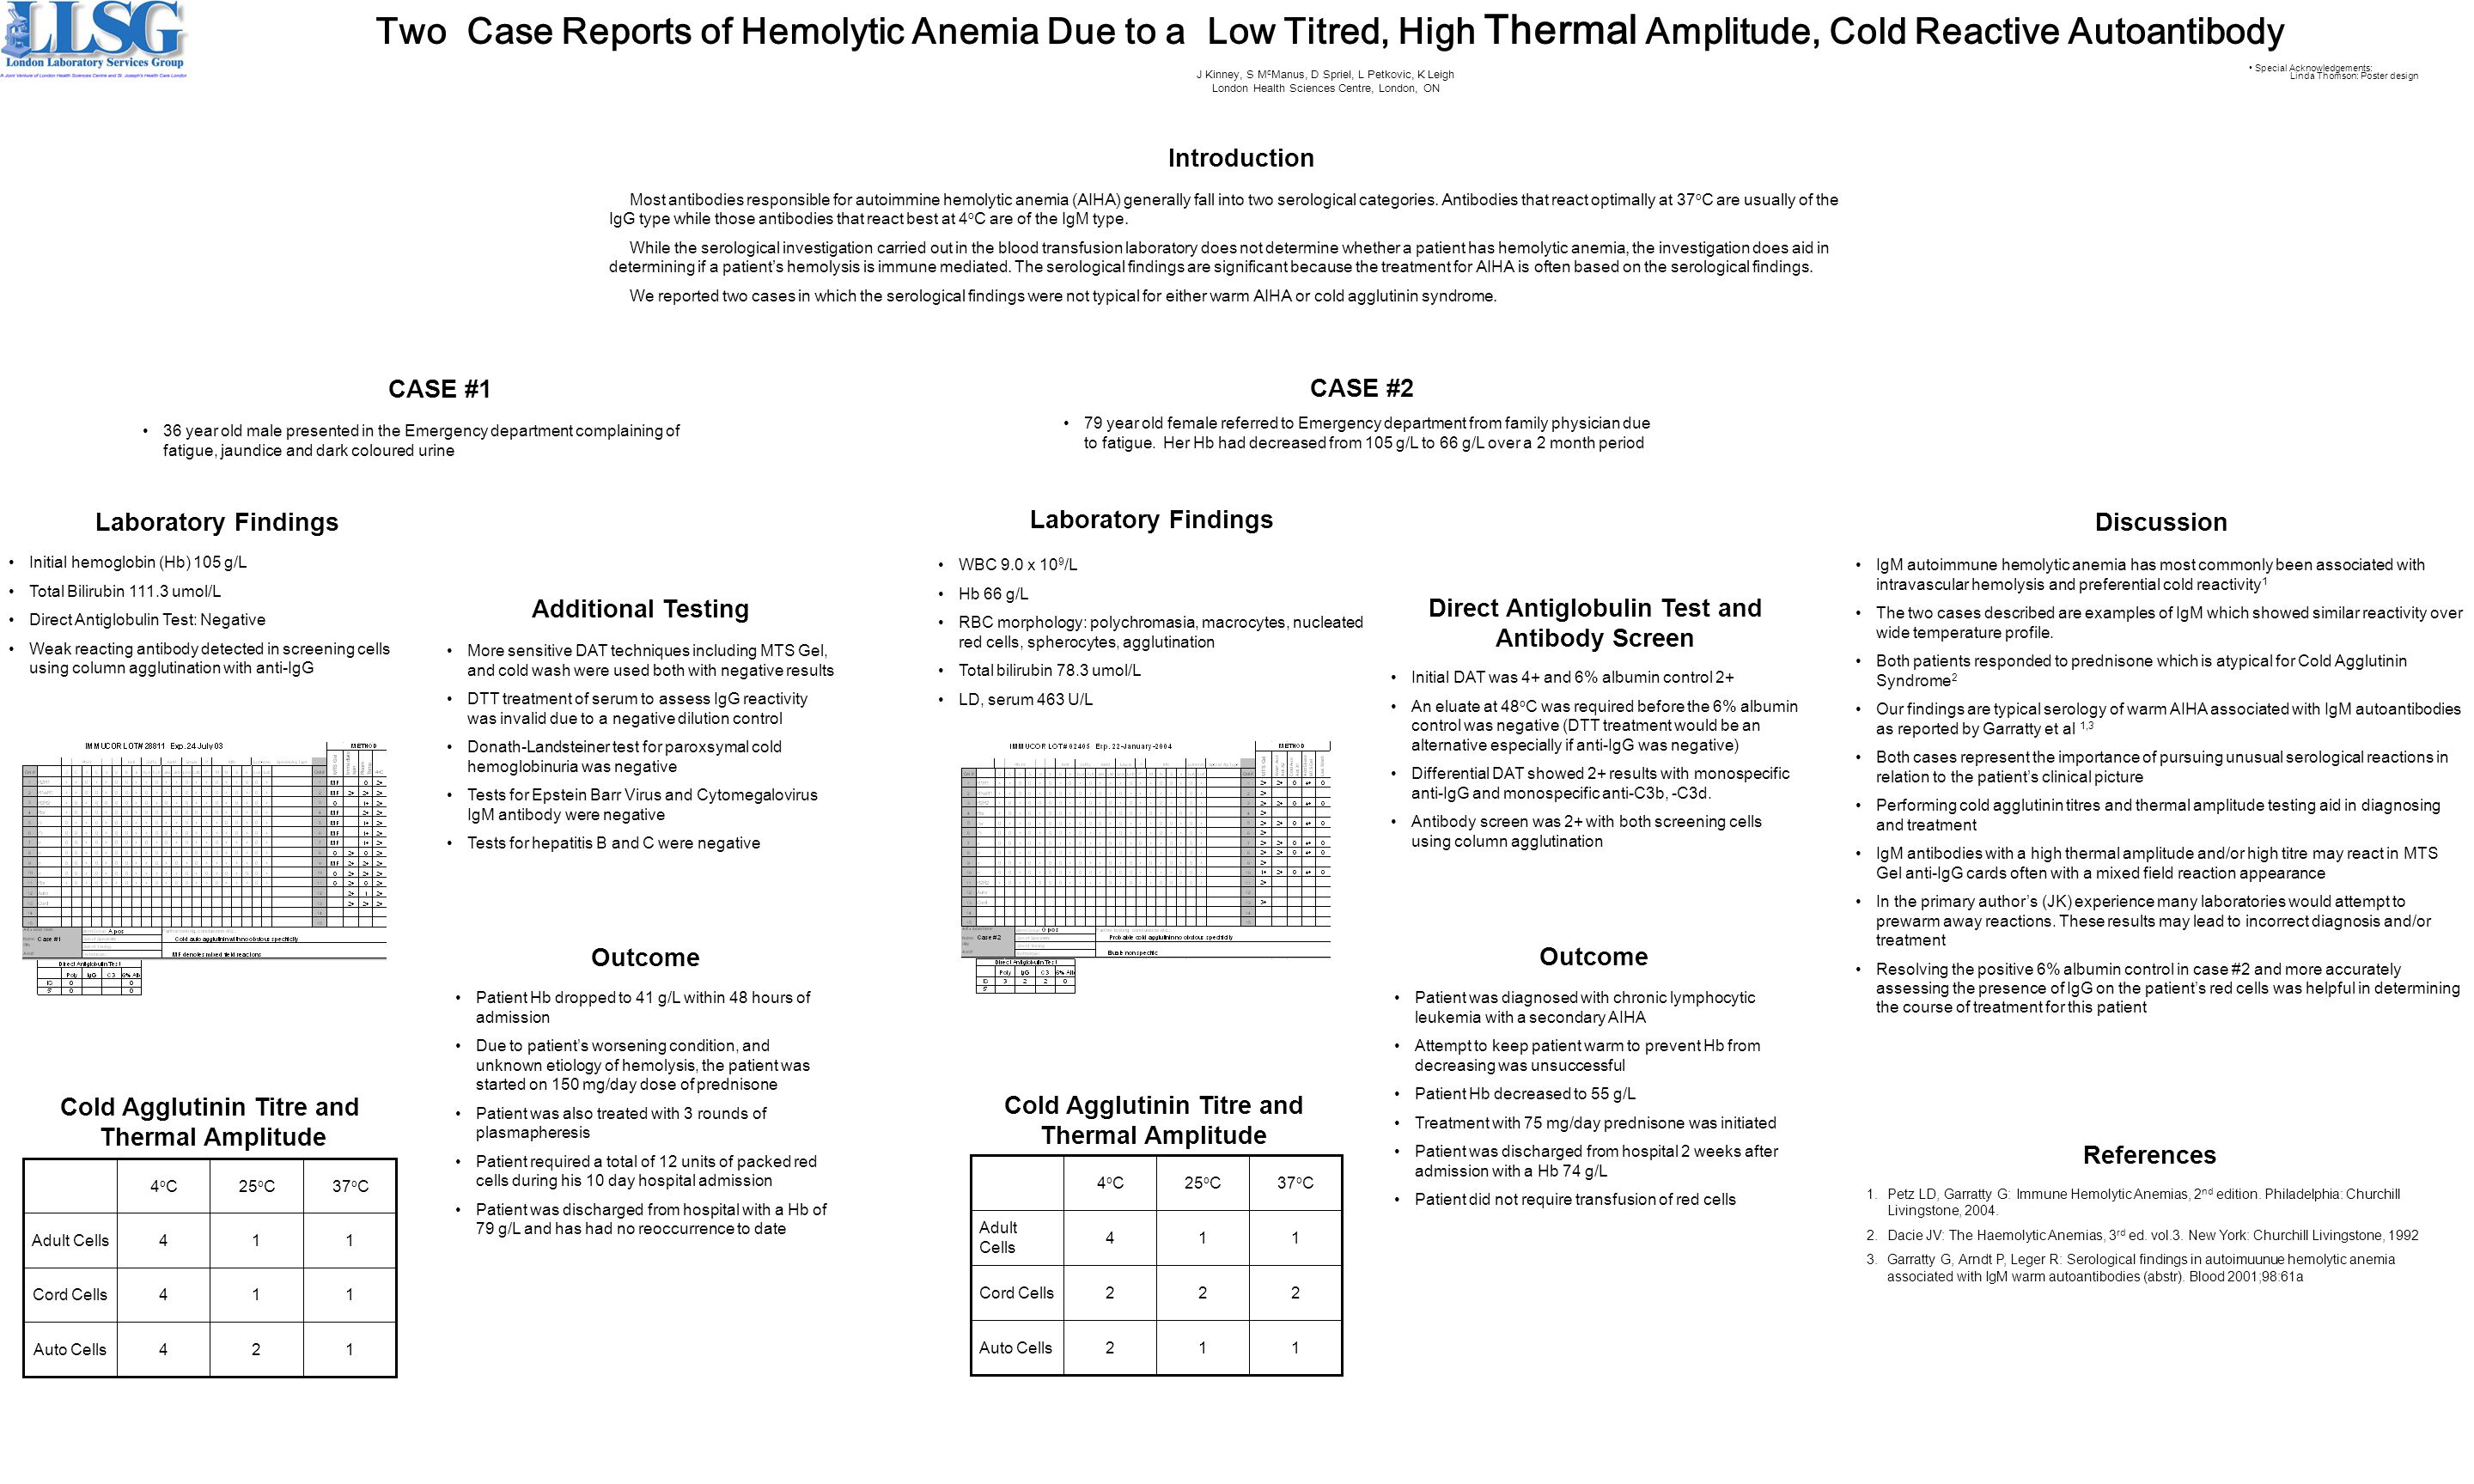 Two Case Reports of Hemolytic Anemia Due to a Low Titred, High Thermal Amplitude, Cold Reactive Autoantibody J Kinney, S M c Manus, D Spriel, L Petkovic, K Leigh London Health Sciences Centre, London, ON Most antibodies responsible for autoimmine hemolytic anemia (AIHA) generally fall into two serological categories.